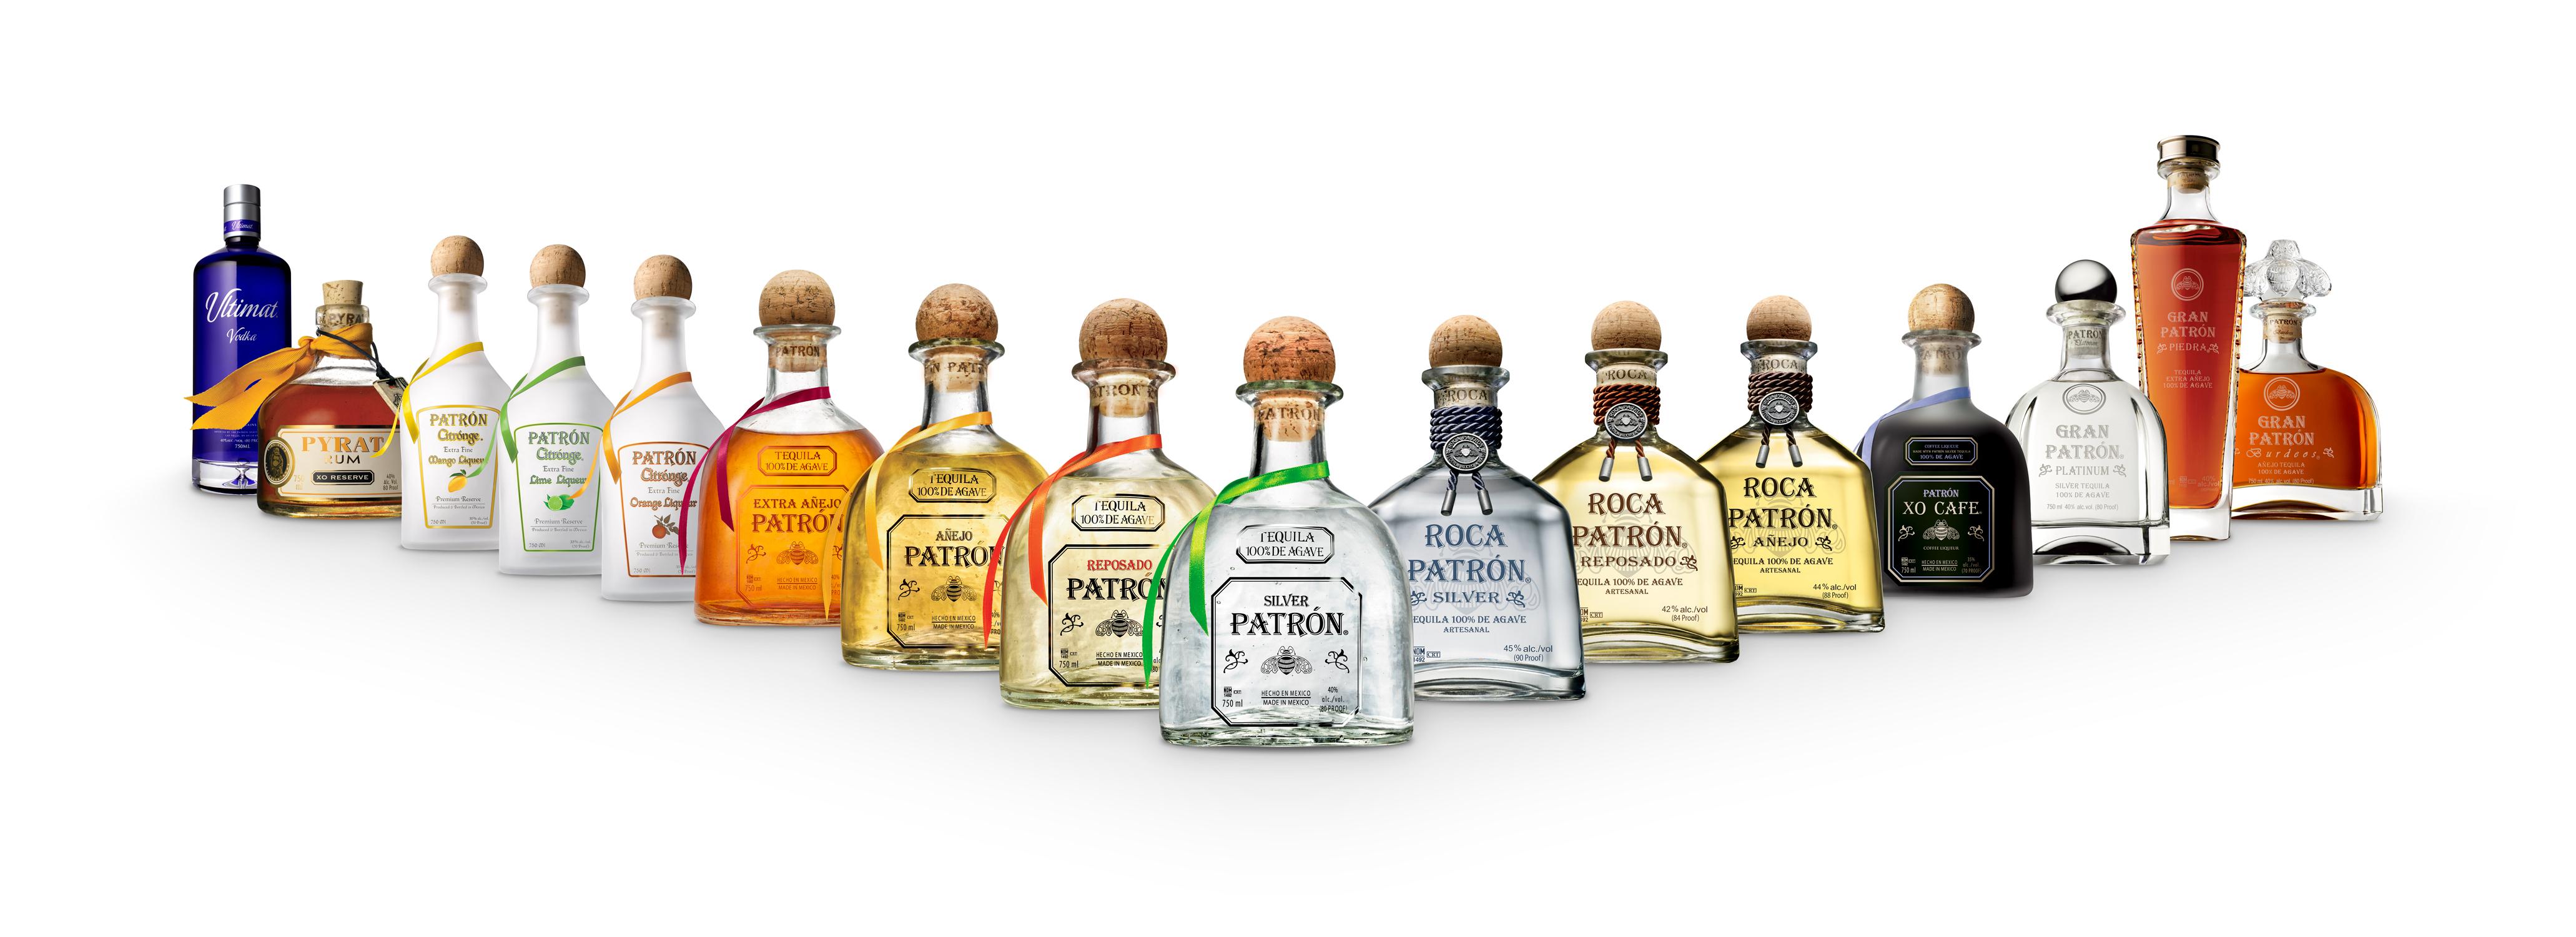 Bacardi Completes Acquisition of Patrón | Business Wire